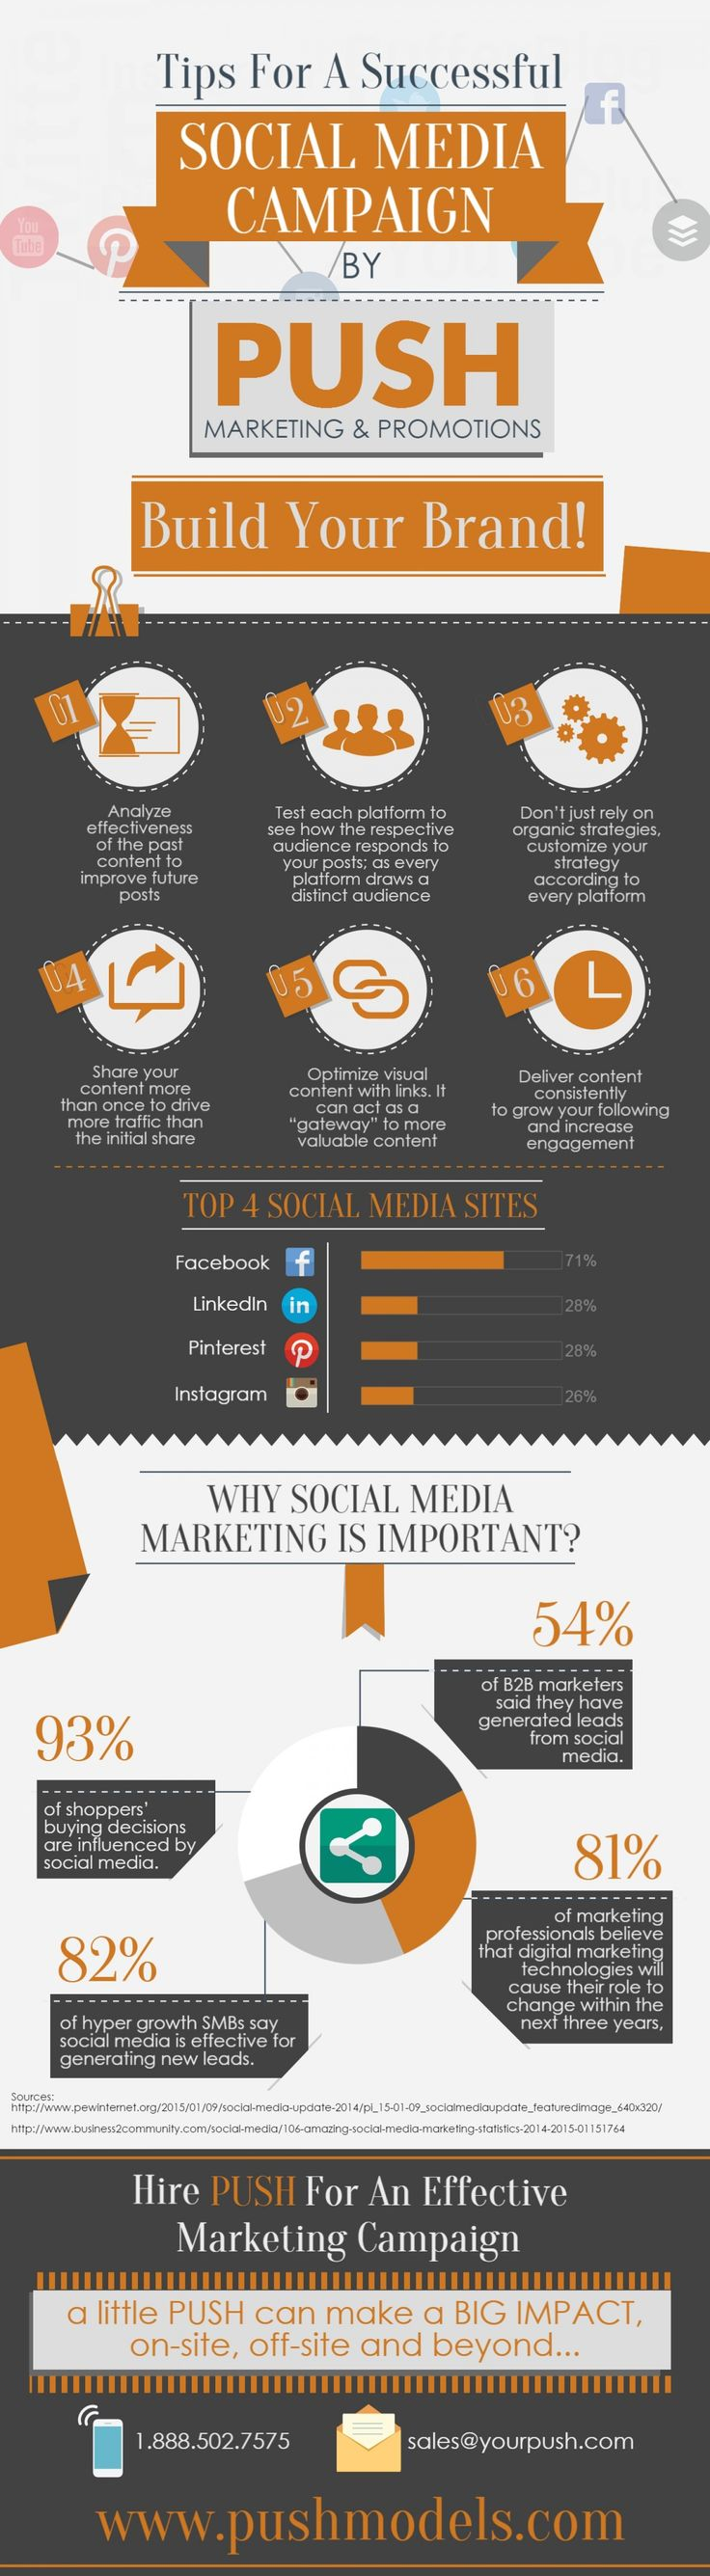 Tips for a successful Social Media Campaign by Push Marketing & Promotions